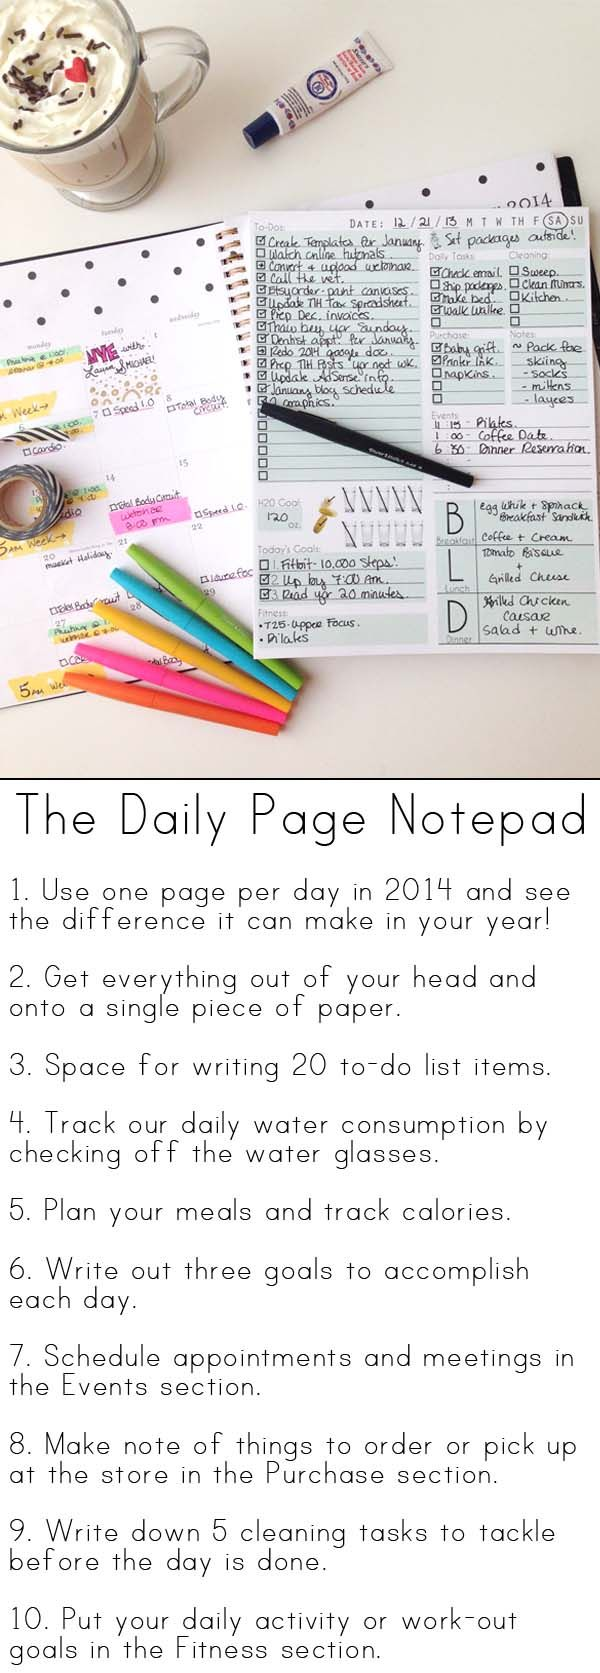 If only these came in personal size for my filofax... I love the idea!